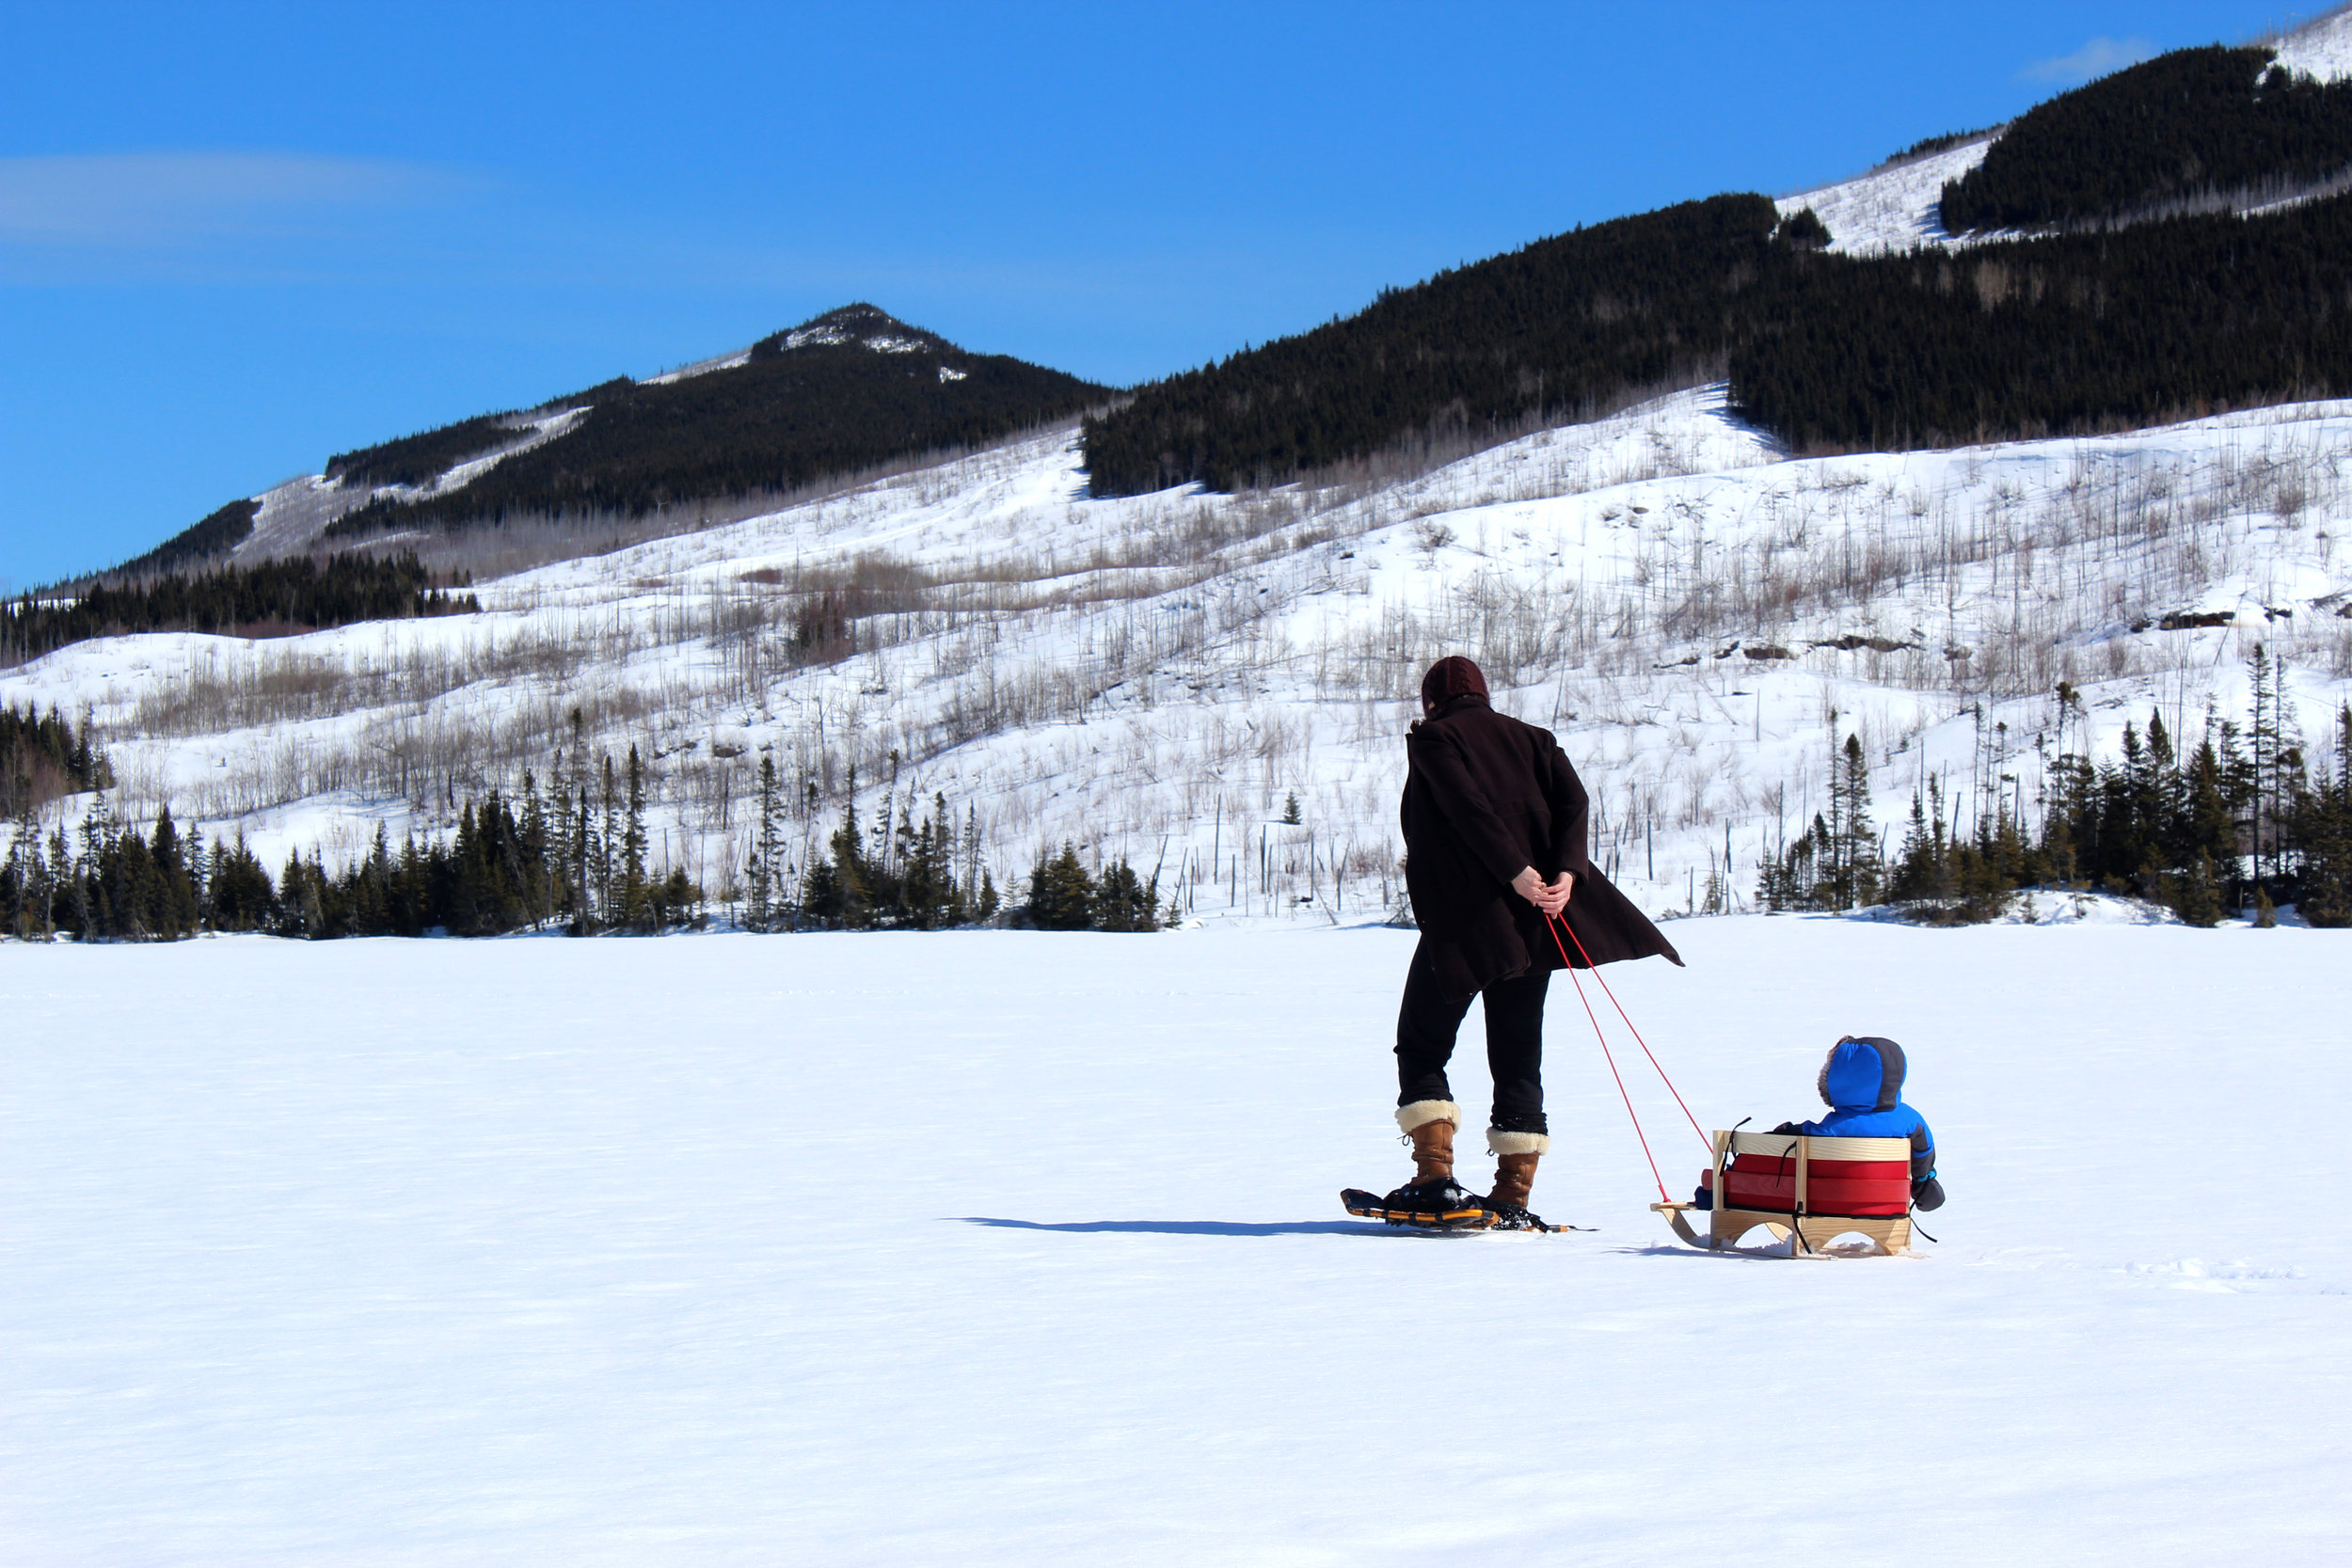 sled and snow shoes on frozen lake canada.jpg